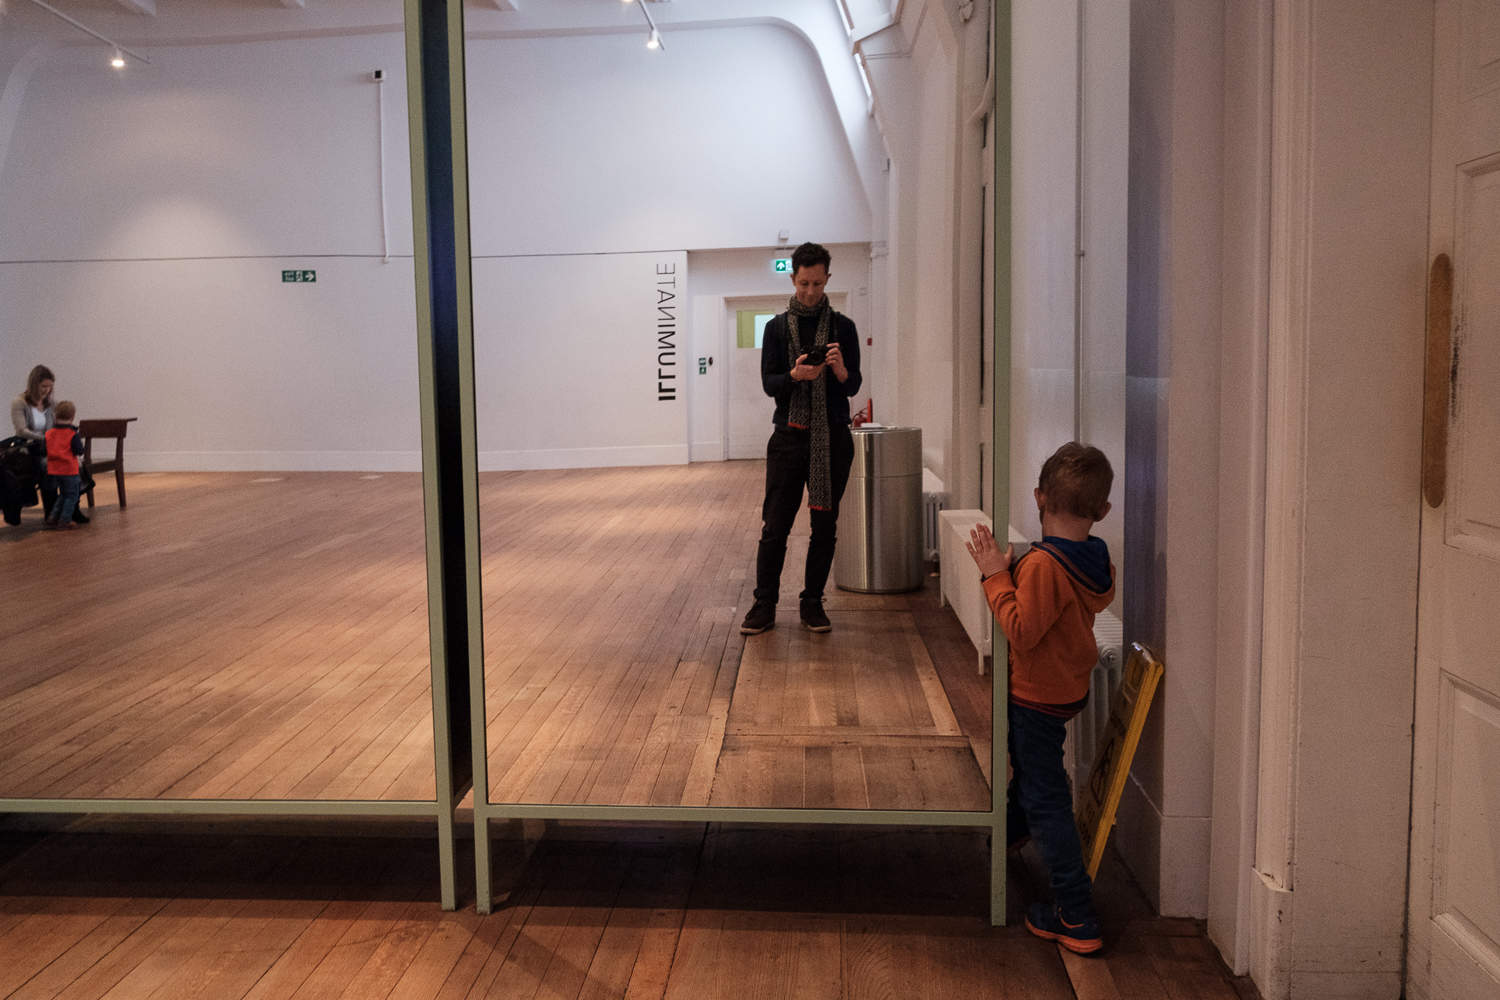 Child exploring behind a mirror at a museum.